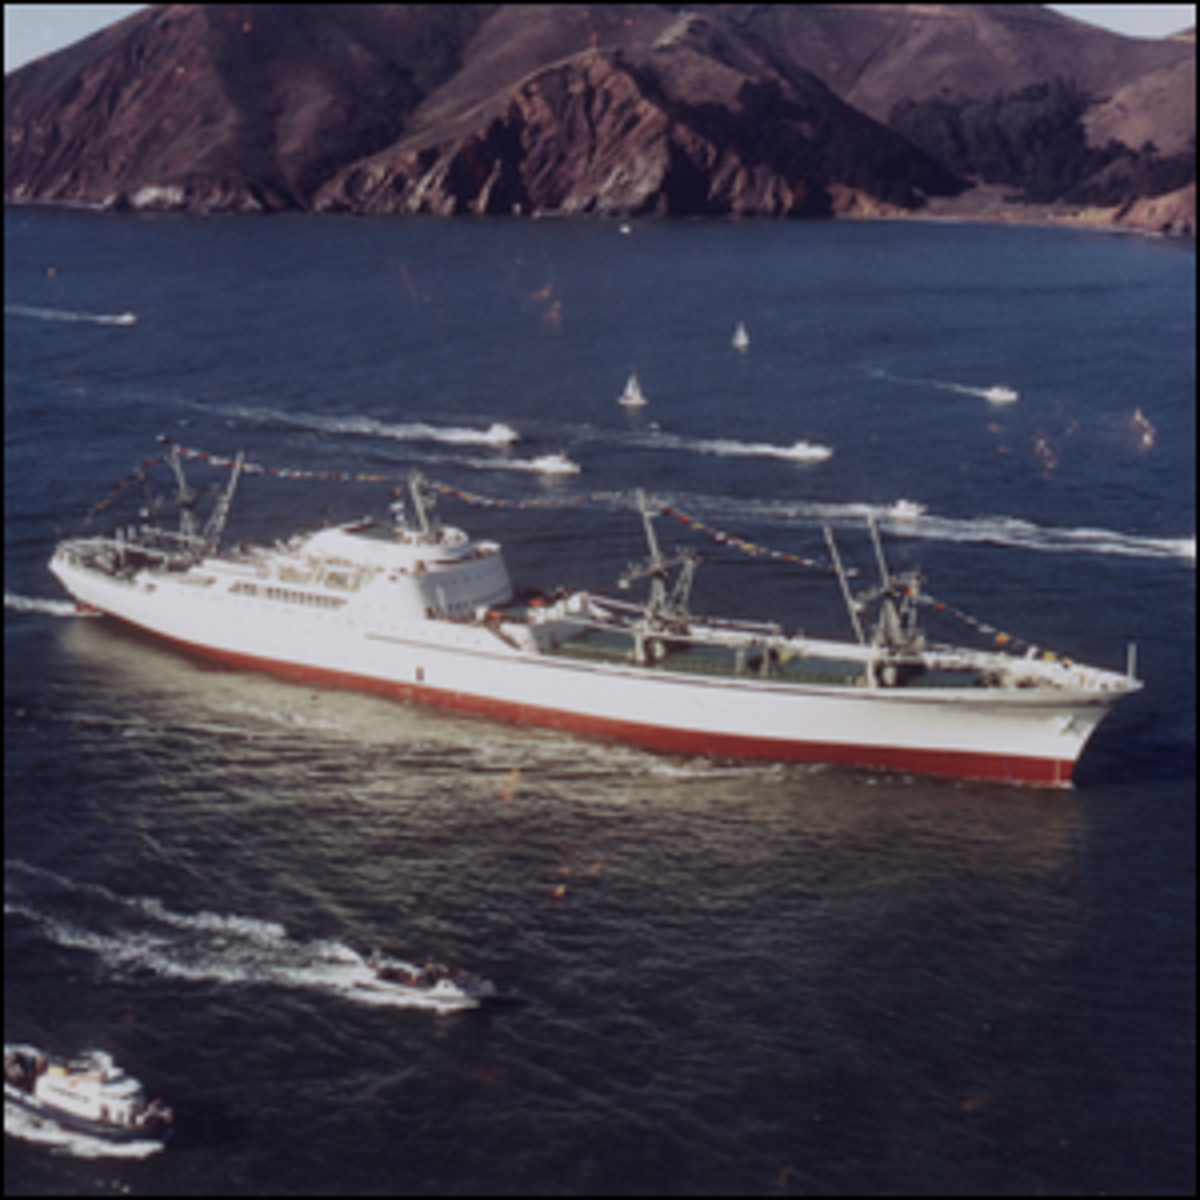 The NS Savannah approaching the Golden Gate Bridge while en route to the 1962 World's Fair in Seattle.